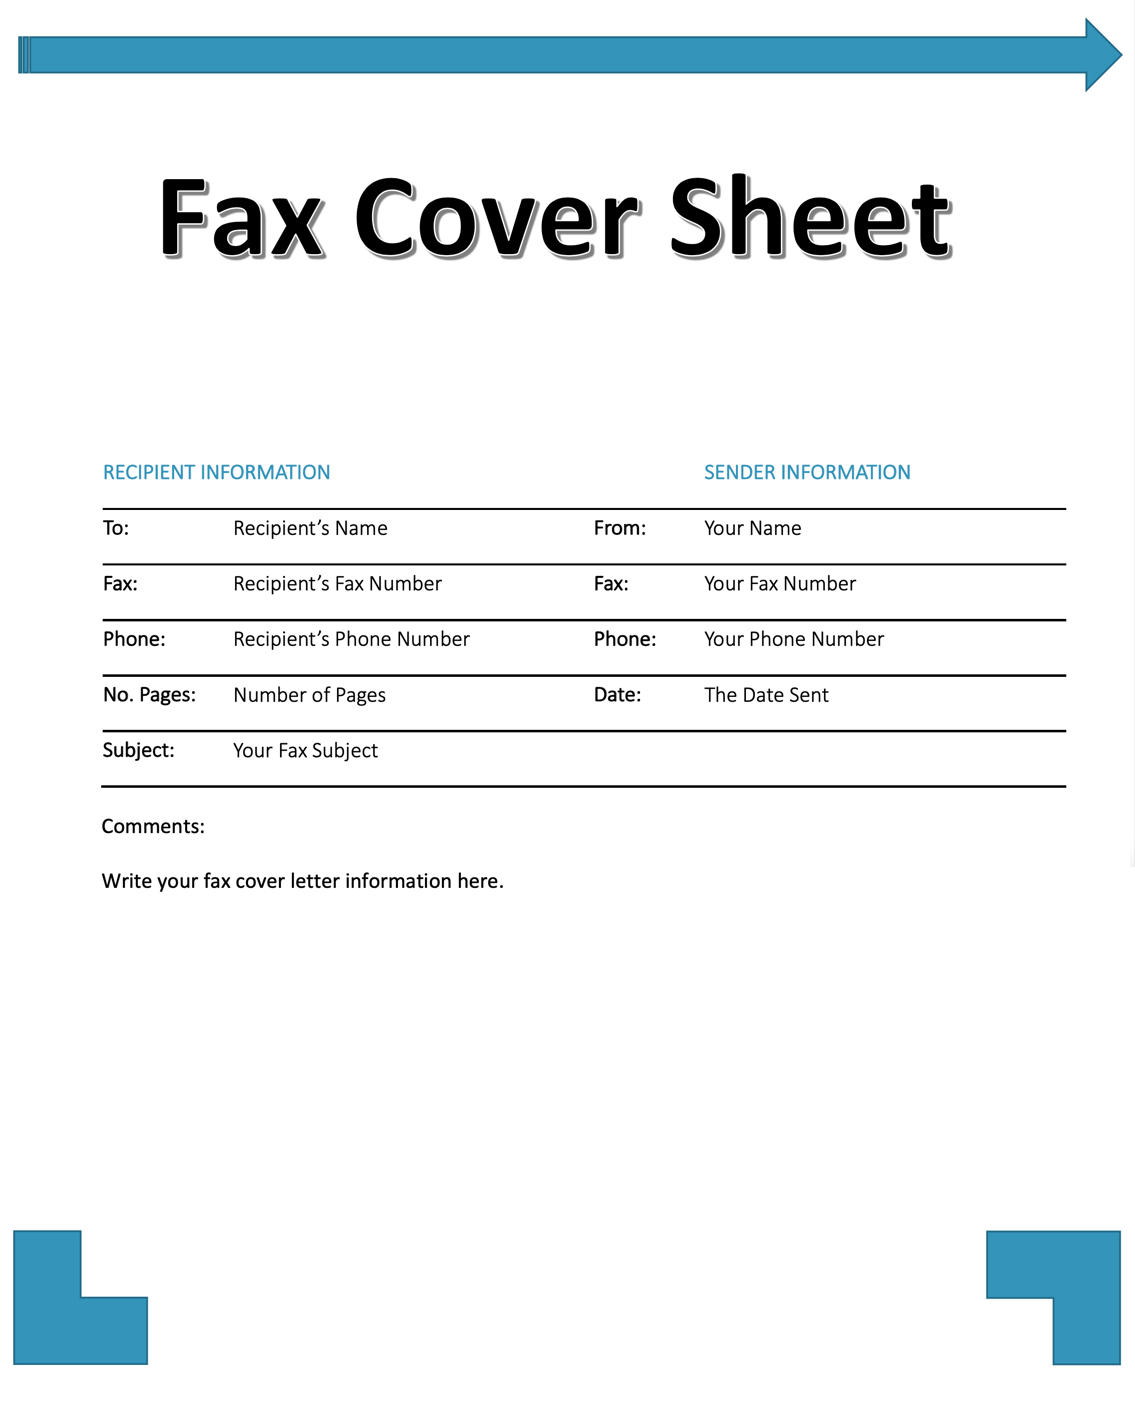 Guide Fax Cover Sheet With Template